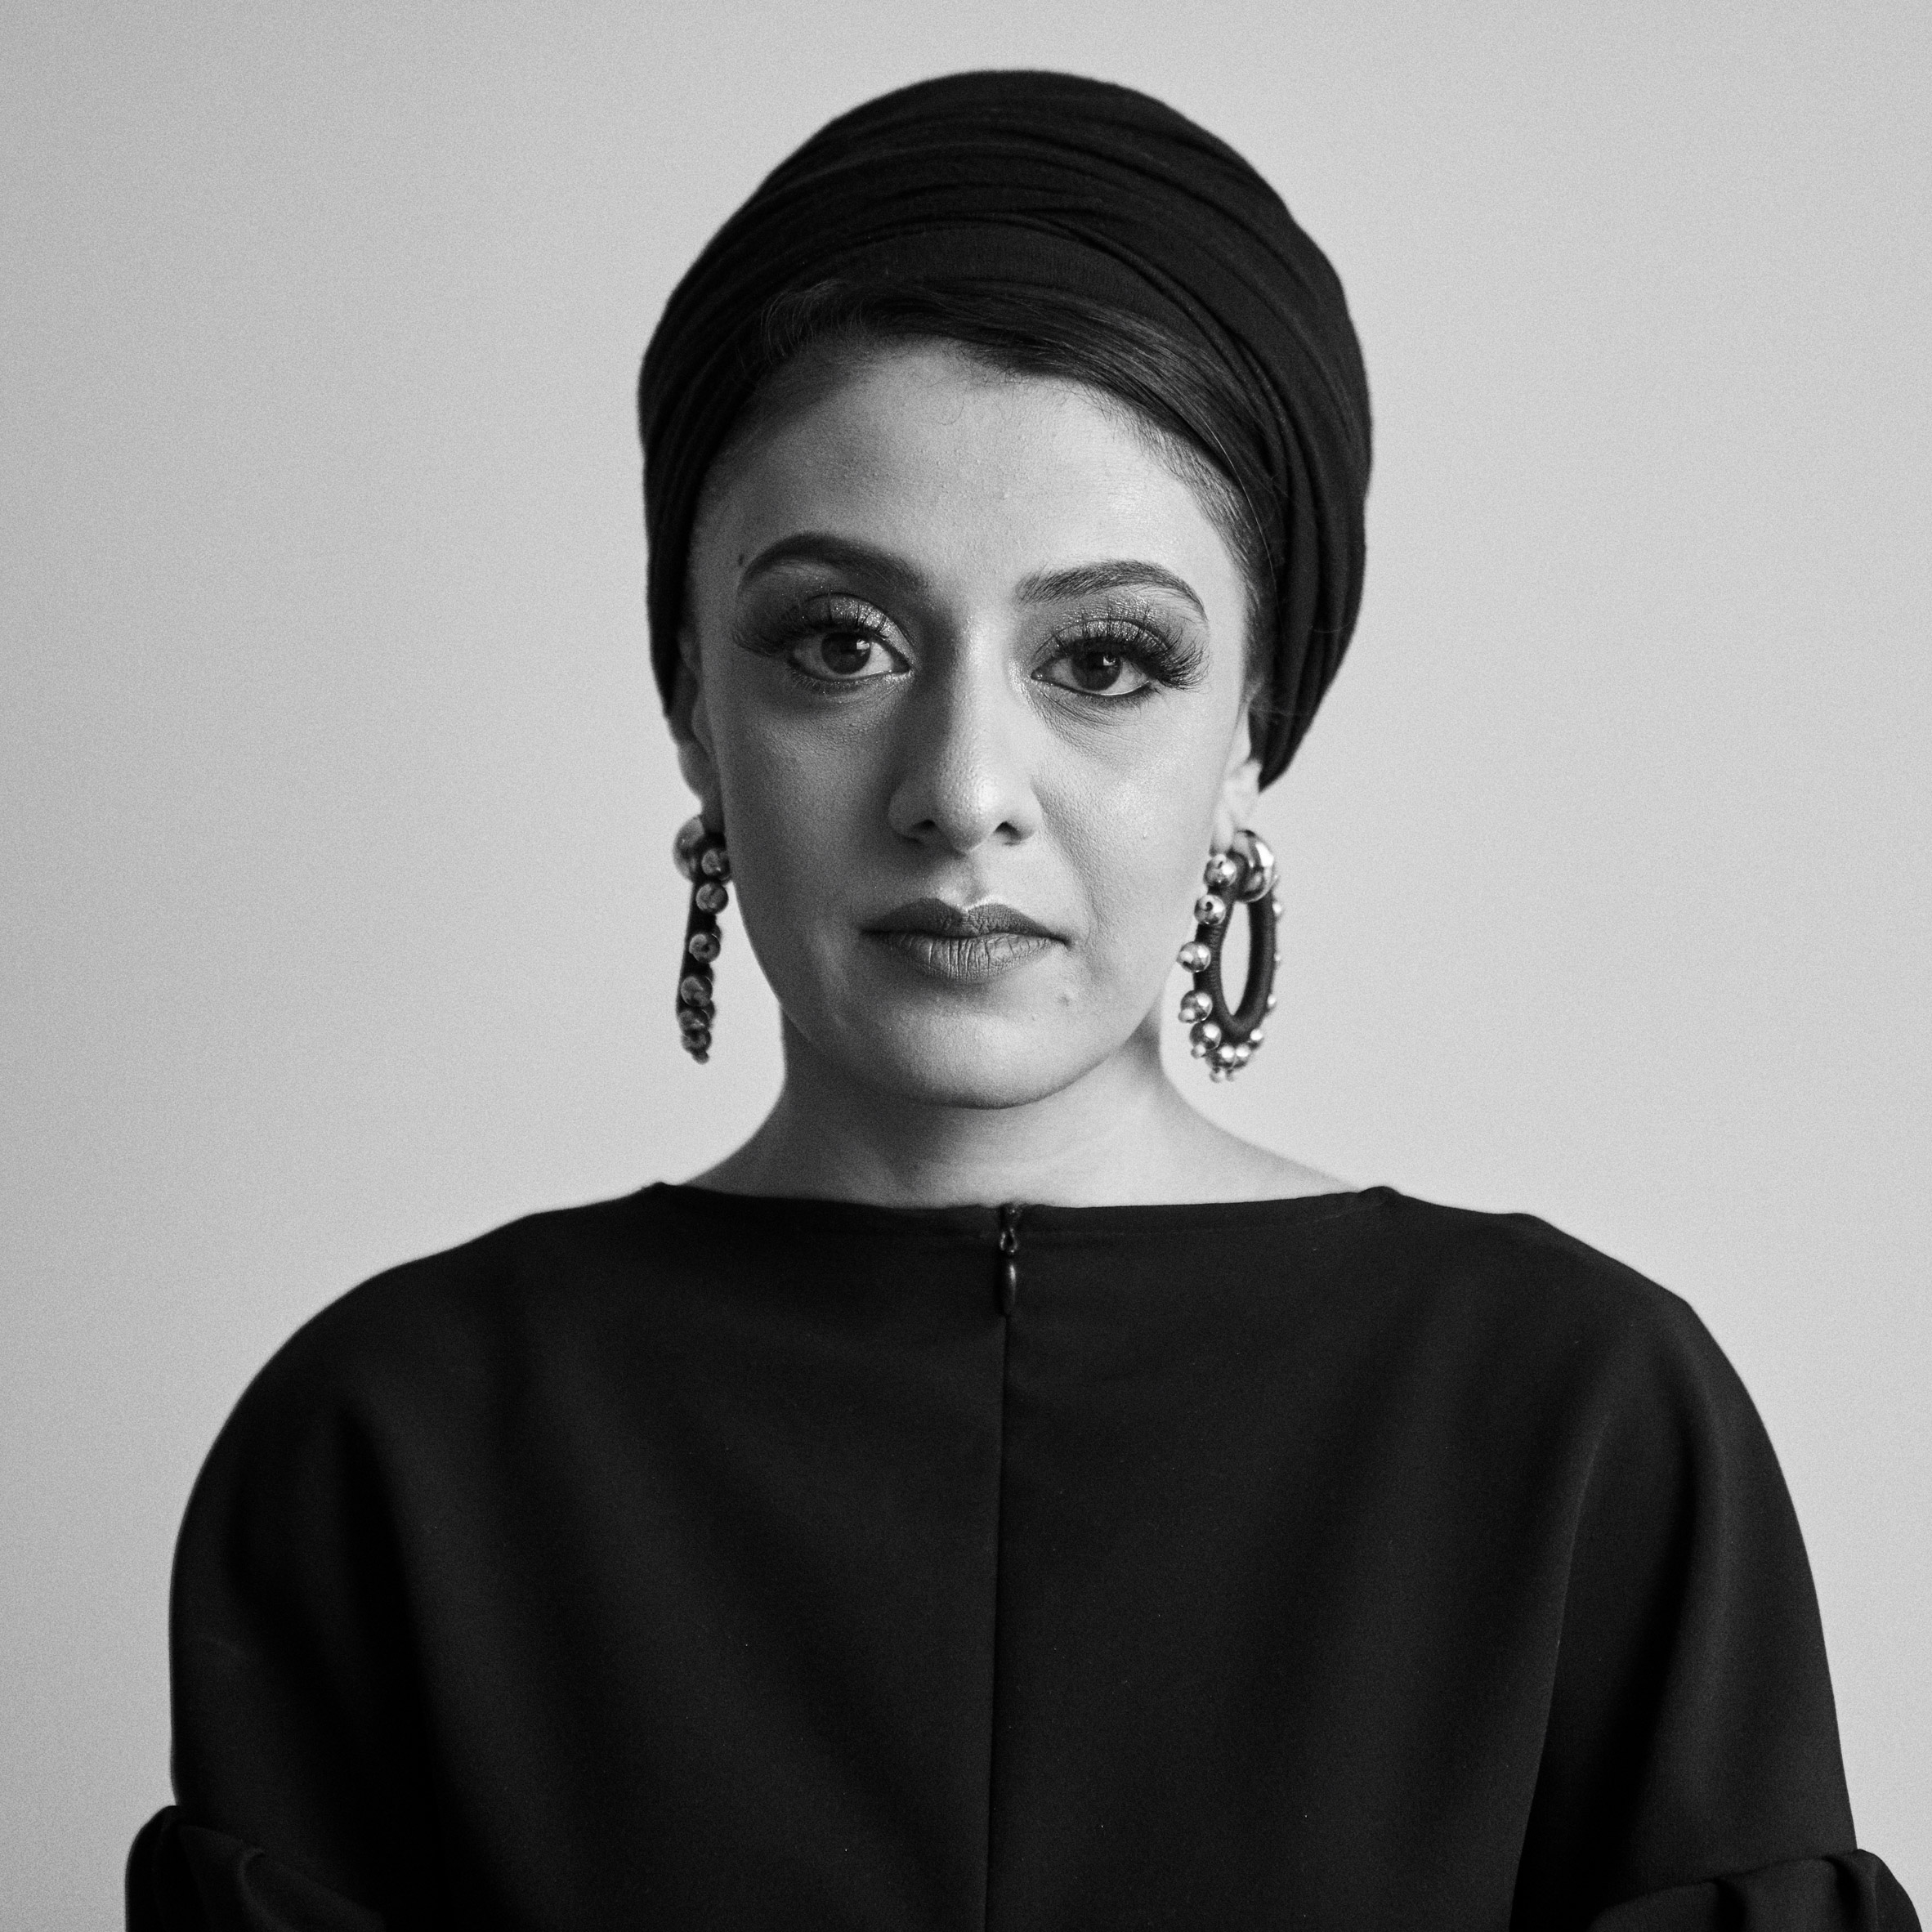 Sumayya Vally, director of Counterspace, portrait